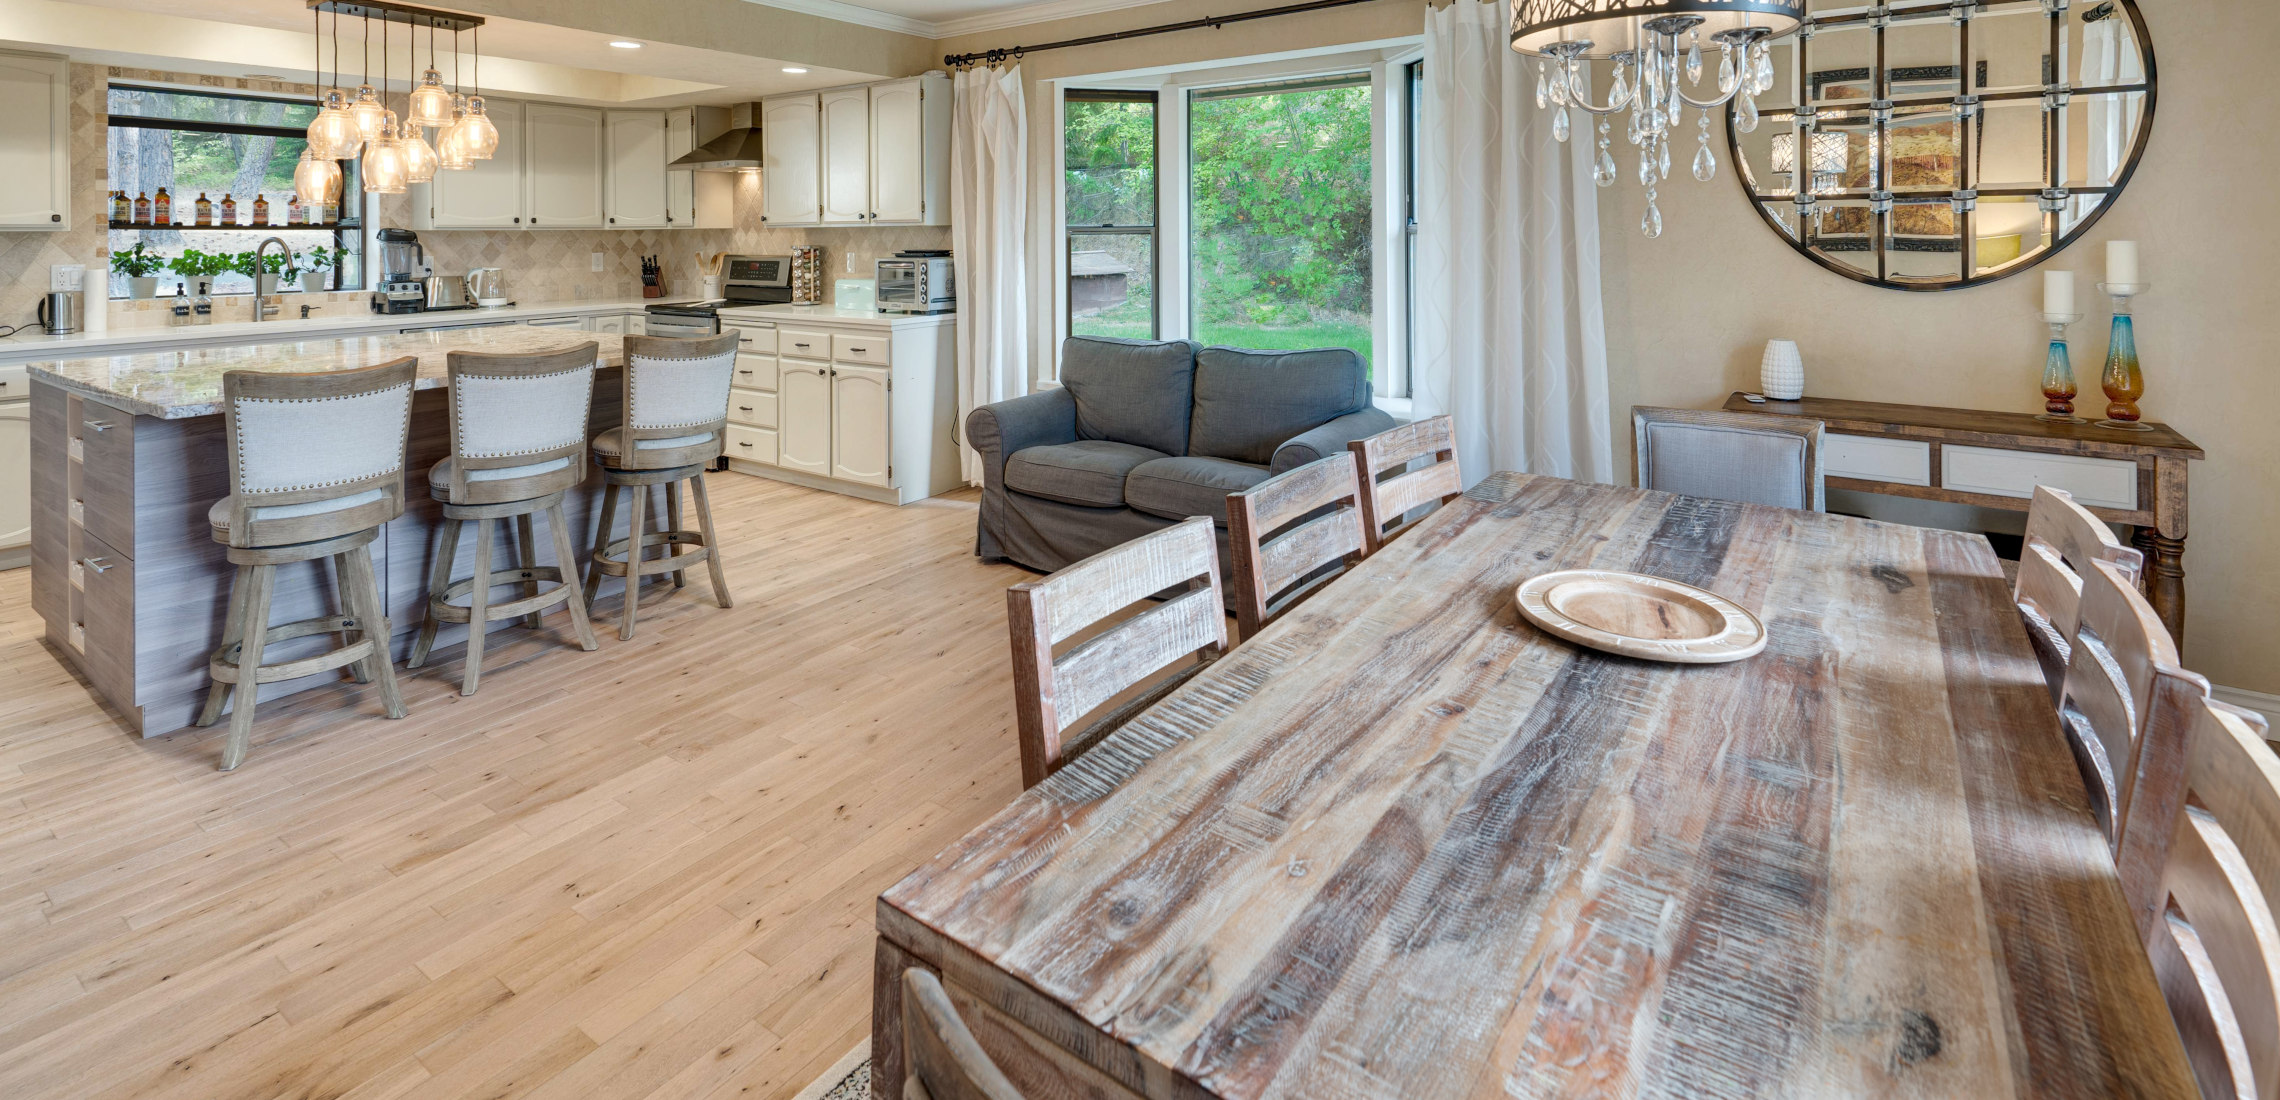 Rustic diner with warm oak